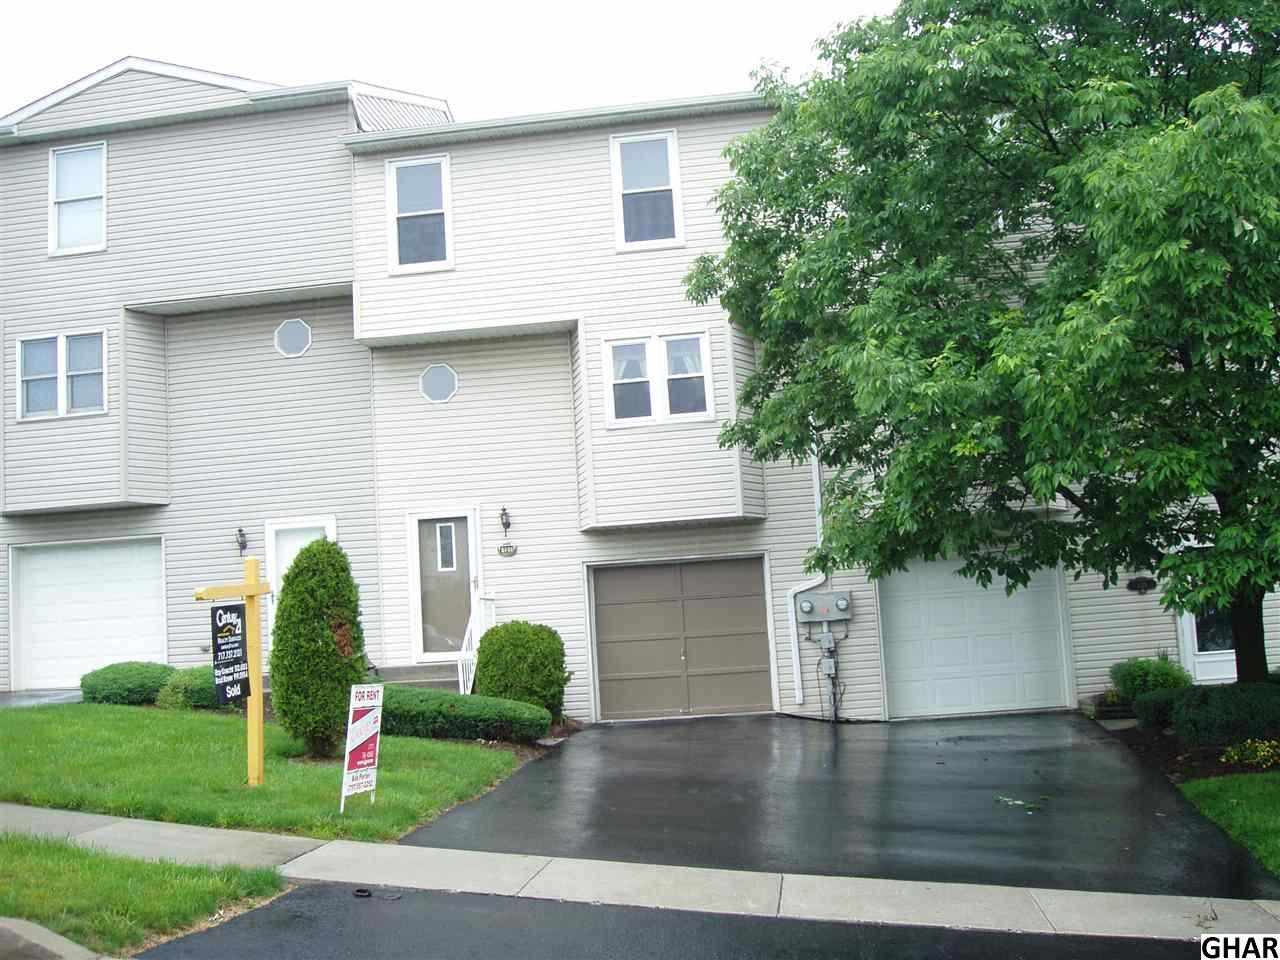 Rental Homes for Rent, ListingId:35162780, location: 137 Chartwood Dr Harrisburg 17111